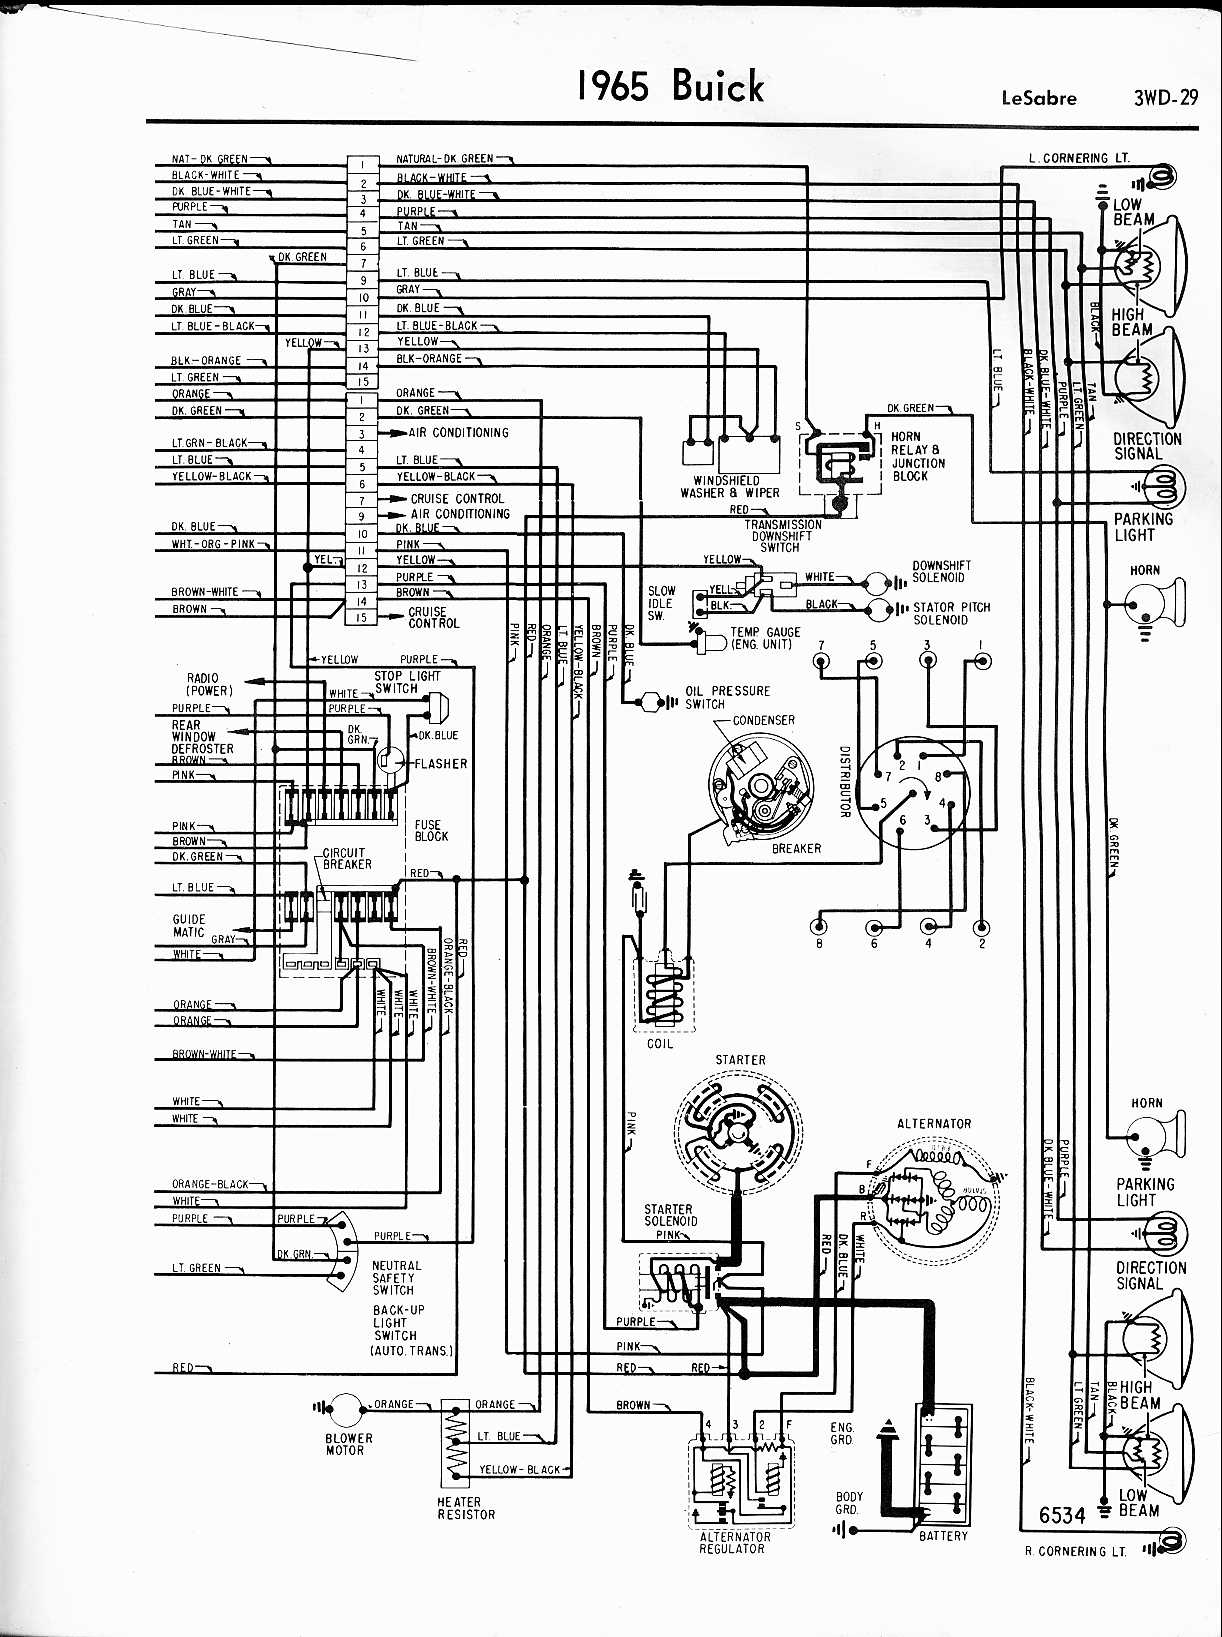 Pontiac Grand Am 2000 Fuse Box Diagram also Gas Station Pump Wiring Diagram as well Wrx Intake Manifold Diagram in addition Showthread also Cruise Control Vacuum Diagram Help Needed 3089297. on dodge dakota door